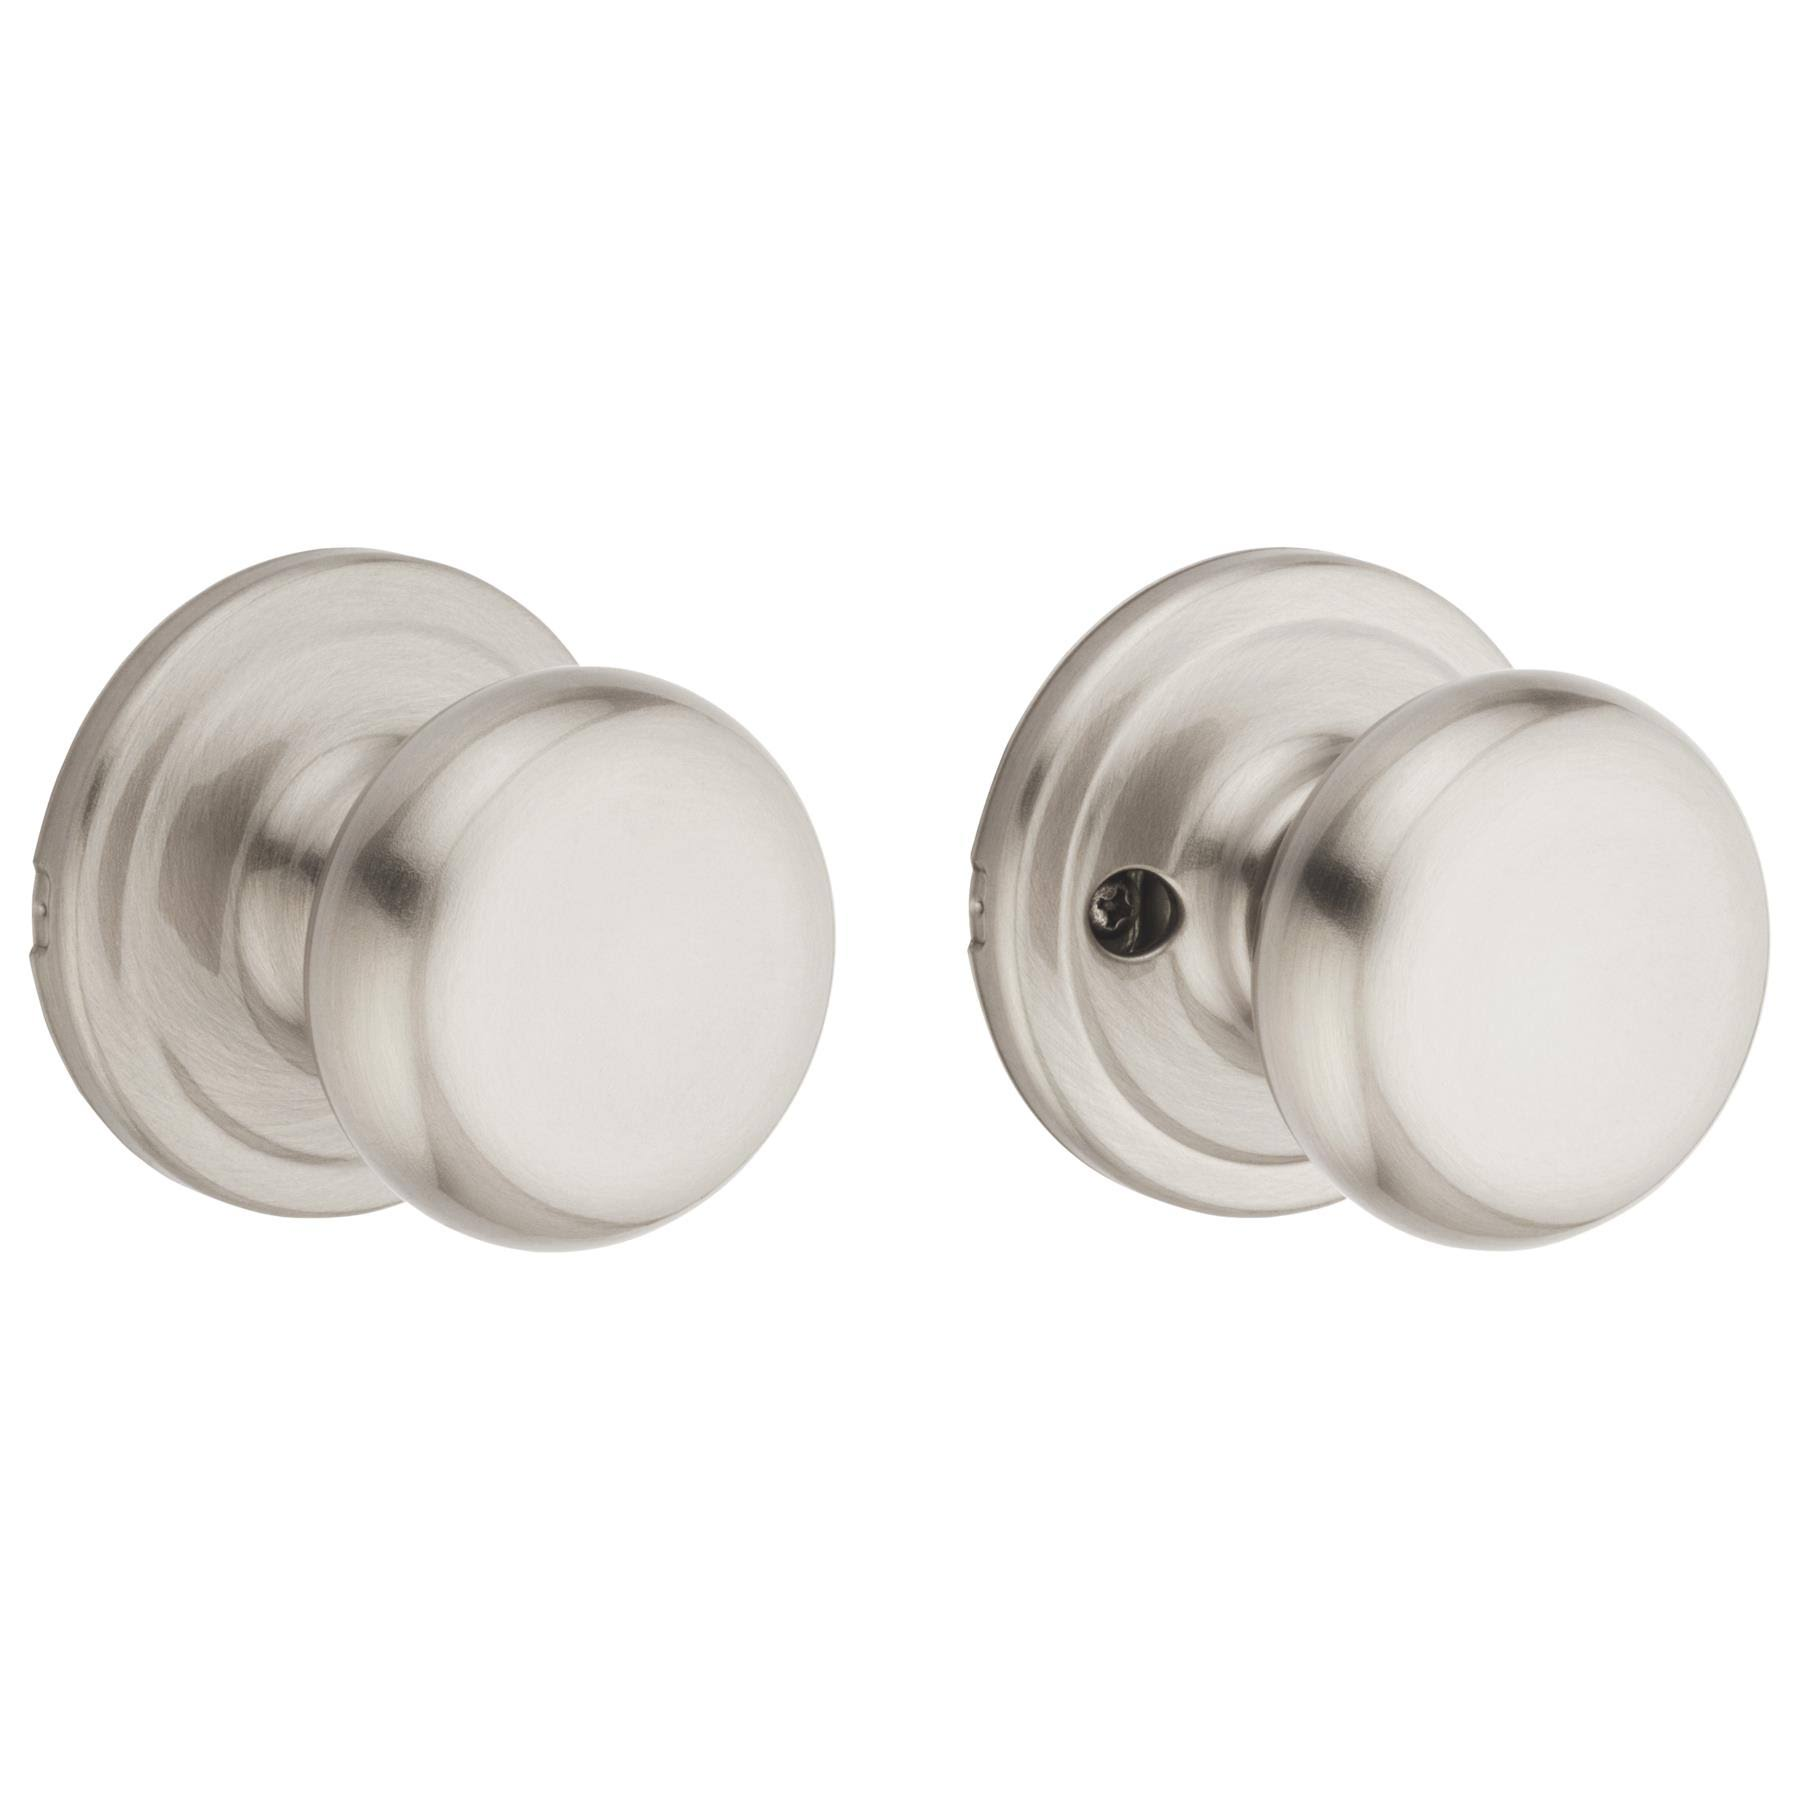 Kwikset Juno Passage Knob - Satin Nickel